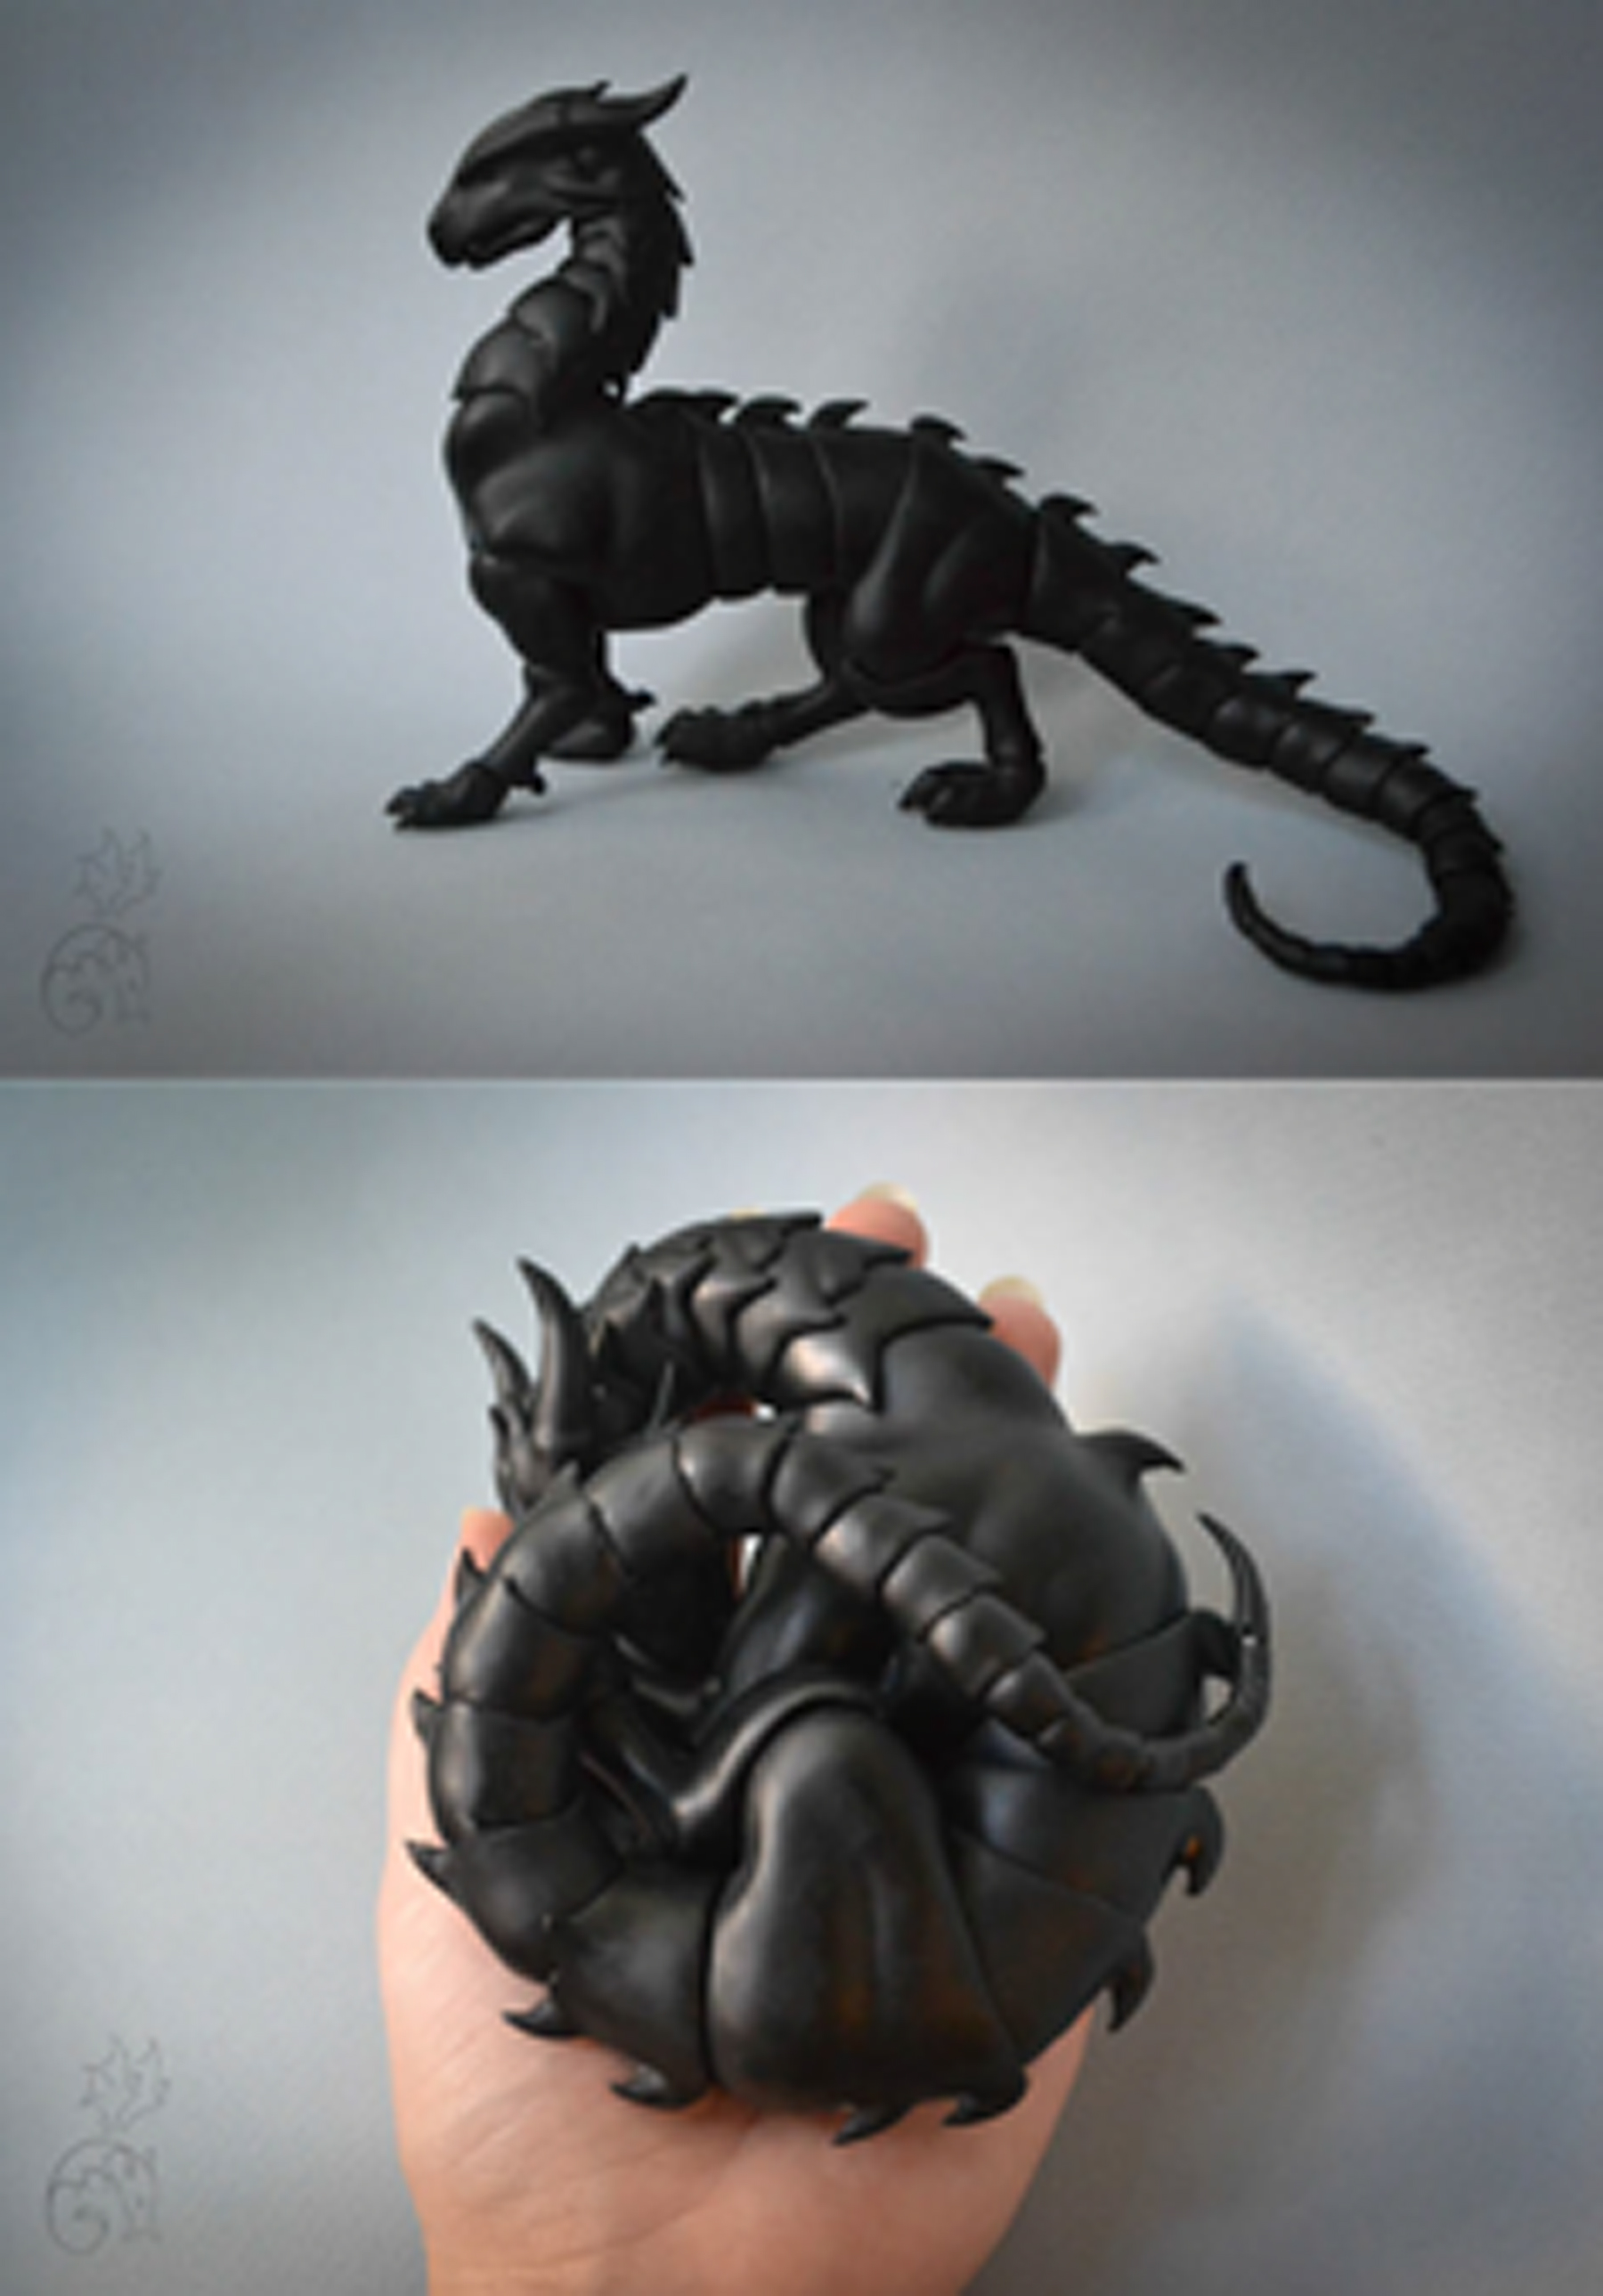 Articulated-Dragon-figure-toy-custom-made-and-available-in-all-different-colors-More-info-at-wallpaper-wp5204216